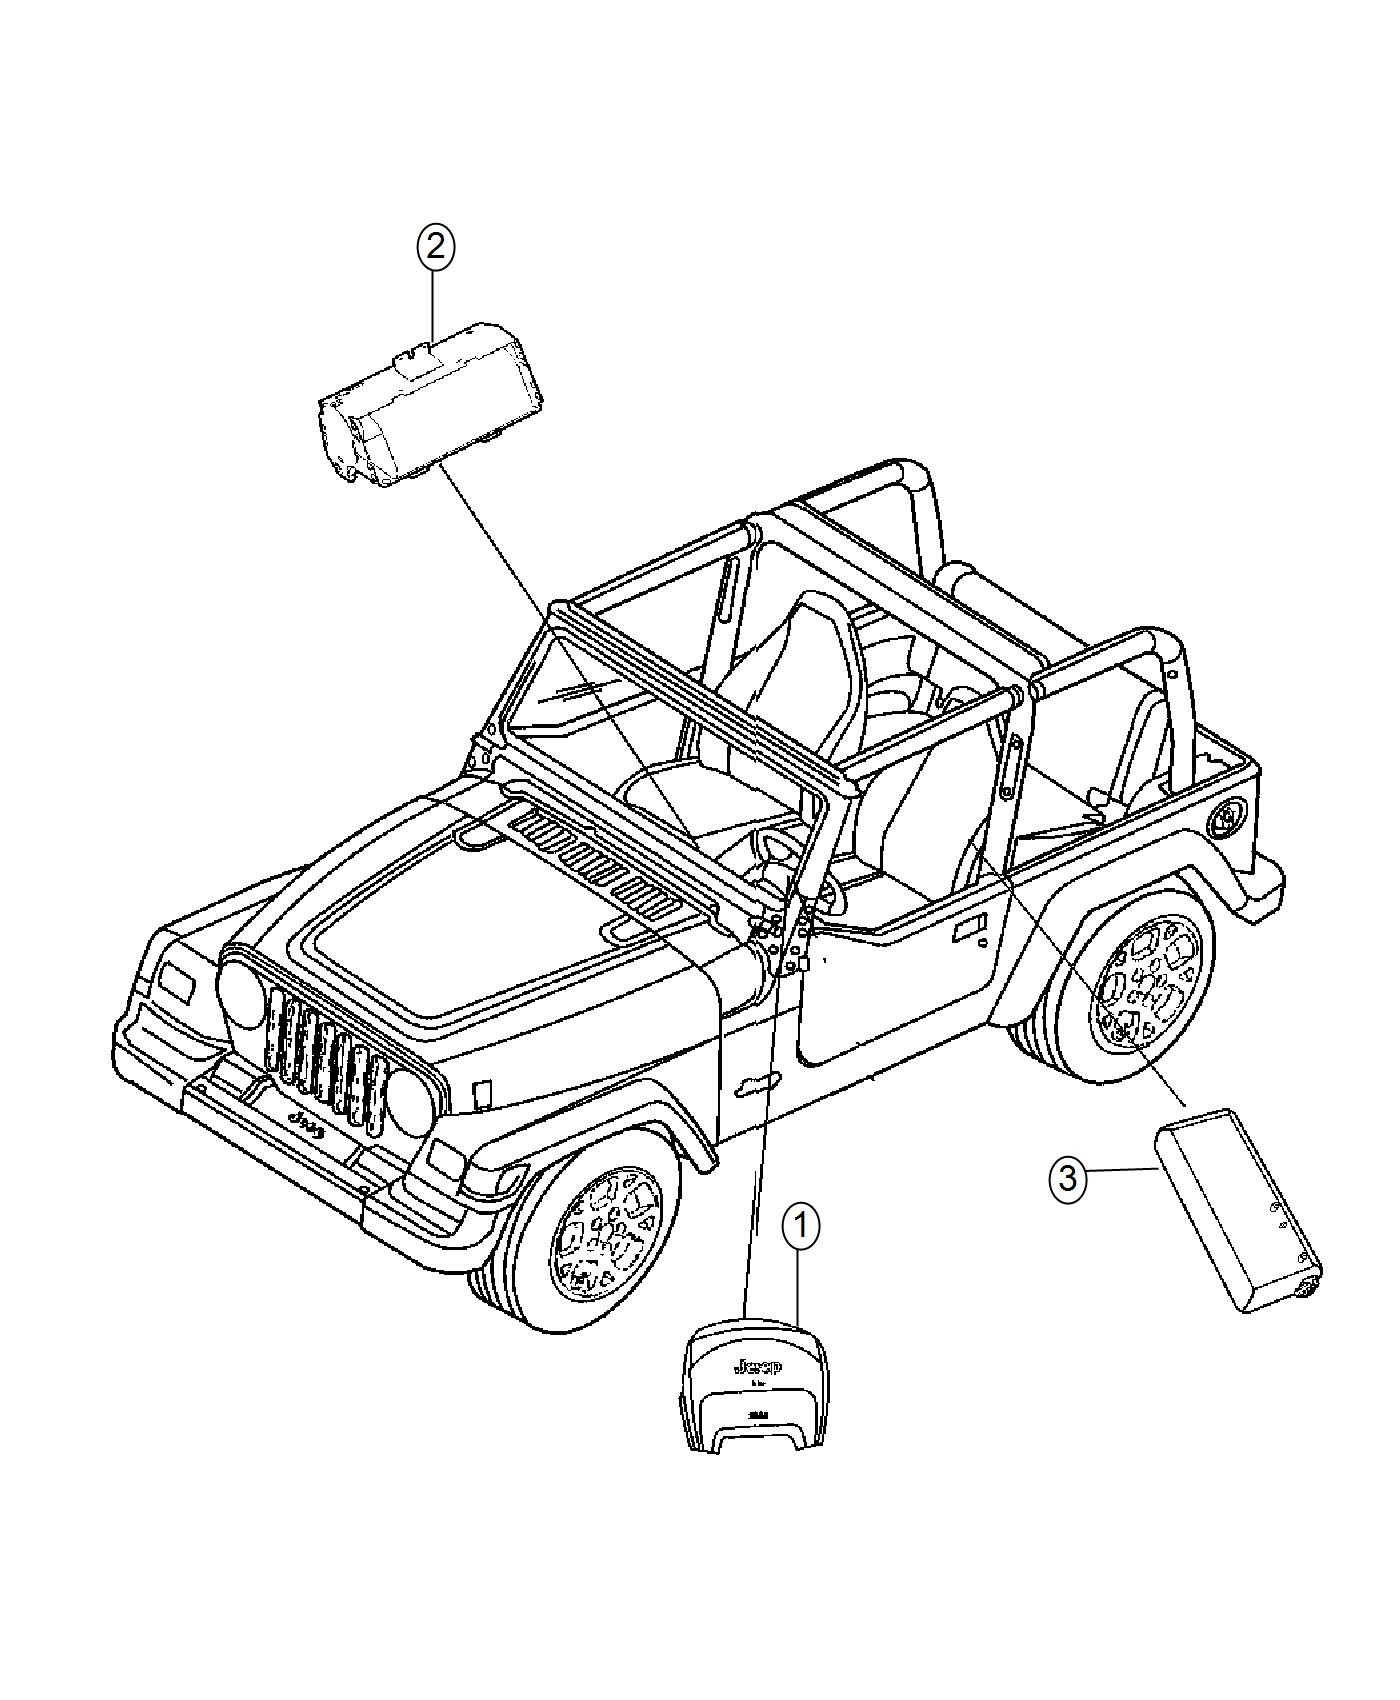 2017 Jeep Wrangler Air bag. Export. Passenger